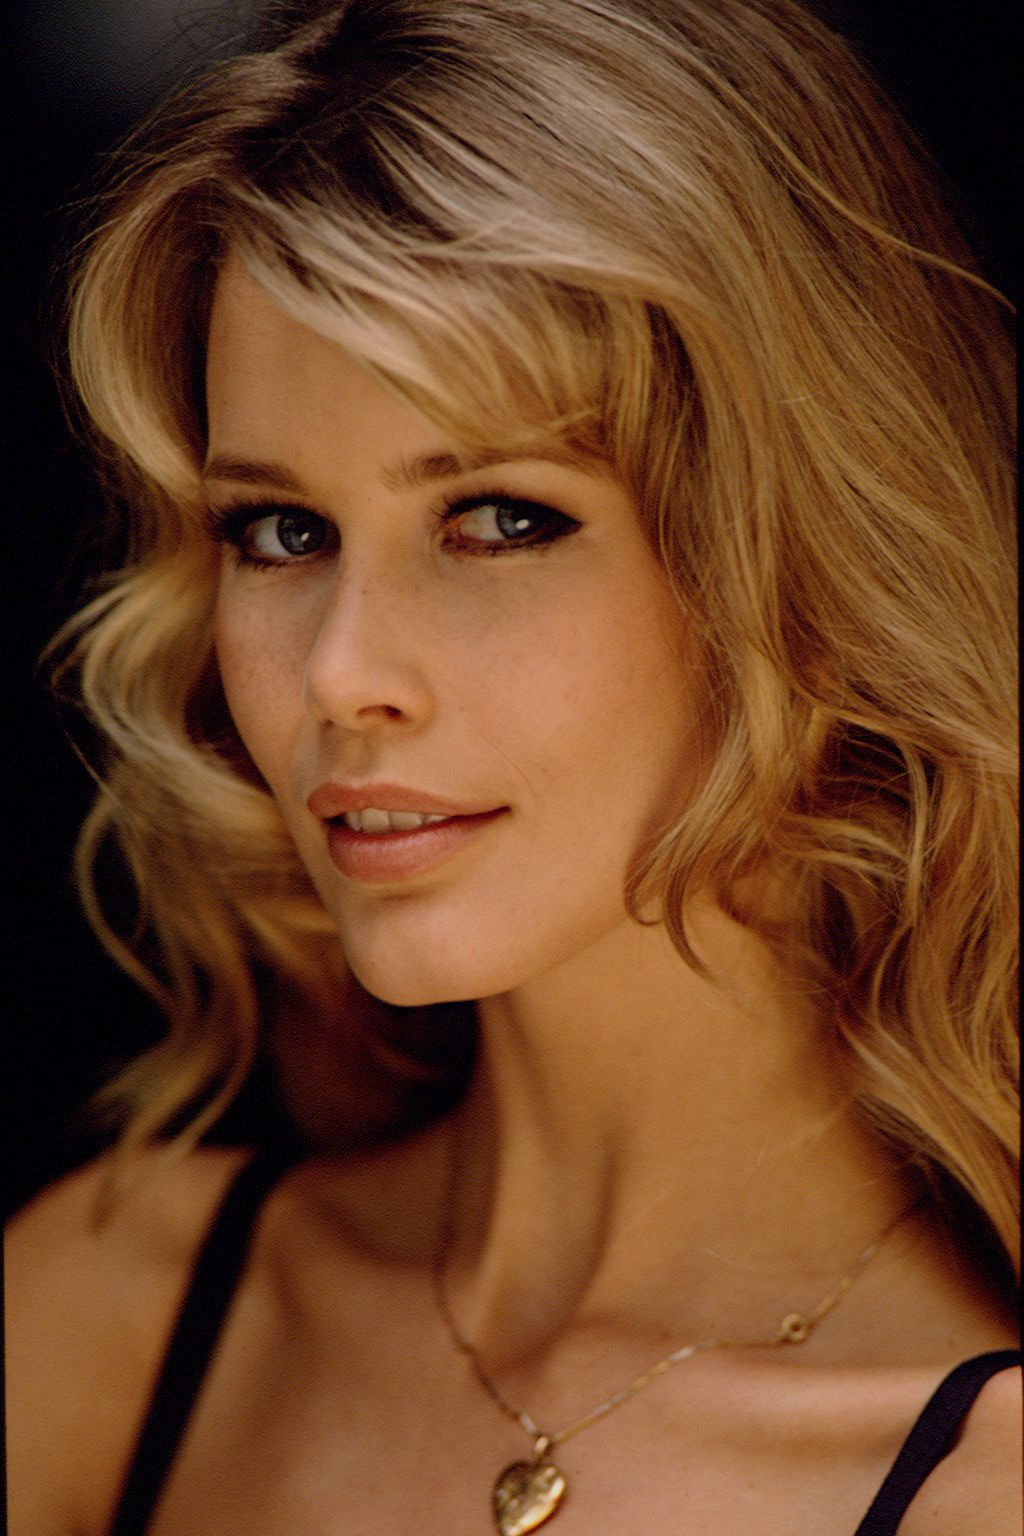 5f992cbf12 SEXY CLAUDIA SCHIFFER PHOTOS - Google Search